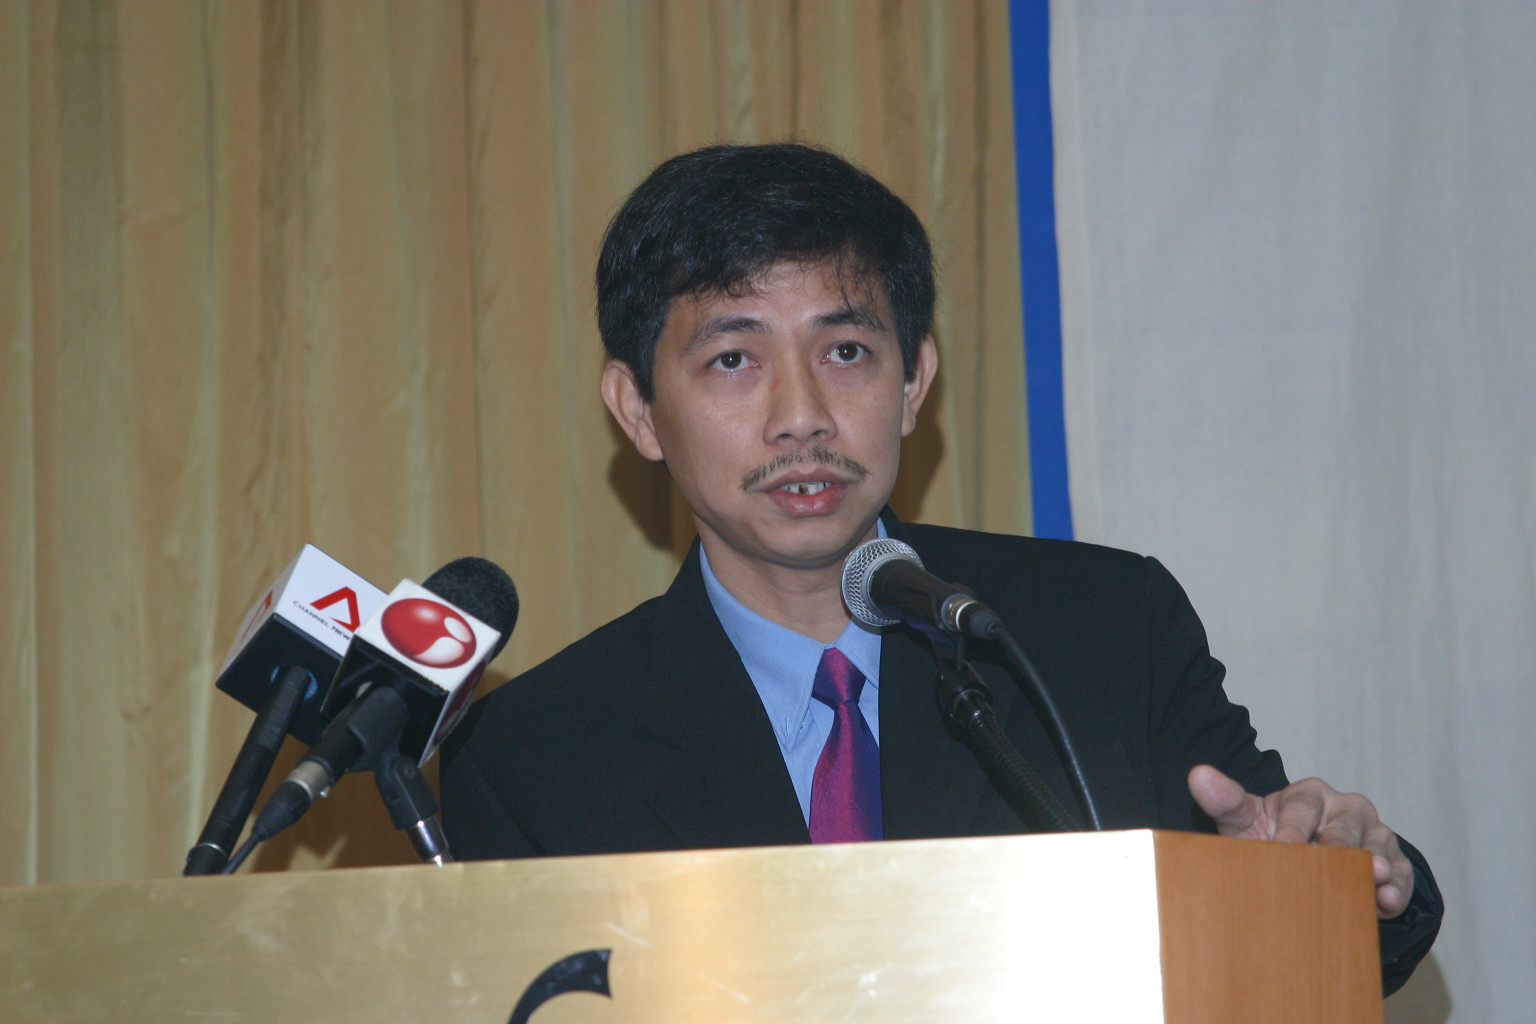 Tran Huynh Duy Thuc, Prisoners of Conscience in Viet Nam